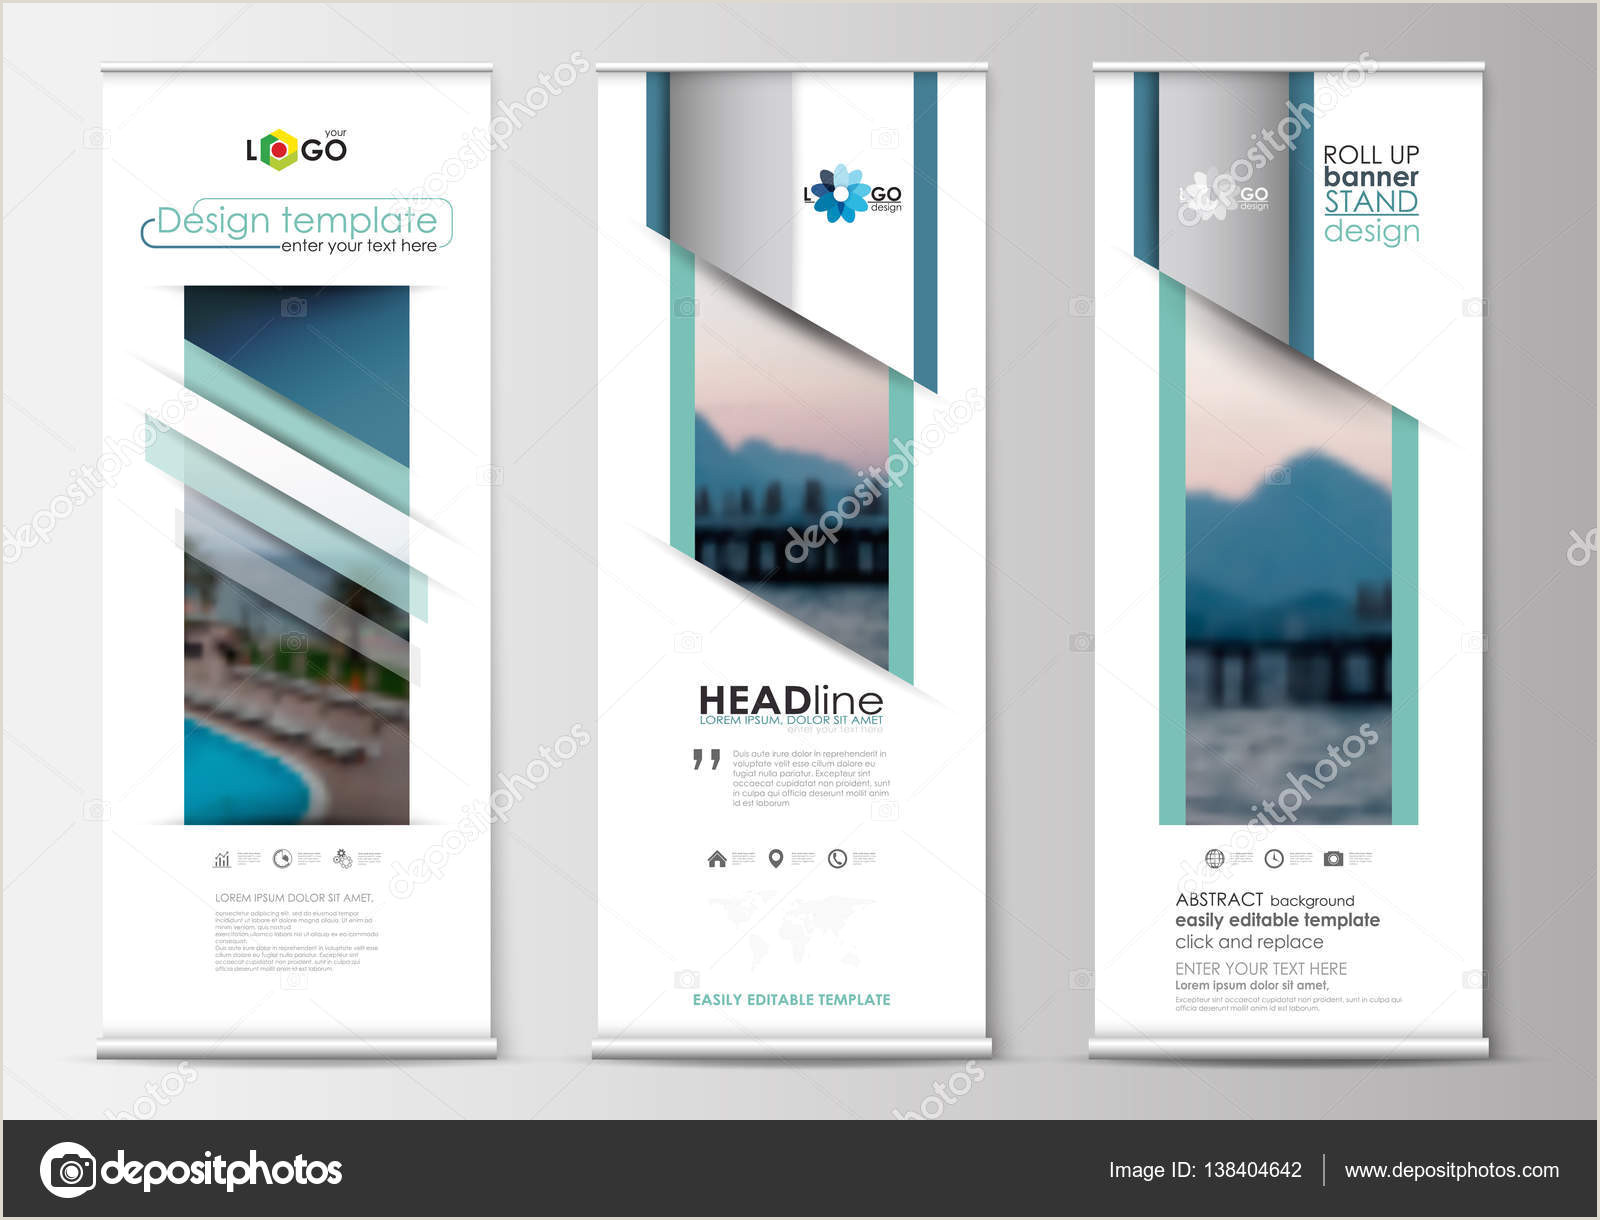 Banner Stand Design Roll Up Banner Stands Flat Design Abstract Geometric Templates Modern Business Layouts Corporate Vertical Vector Flyers Blue Color Travel